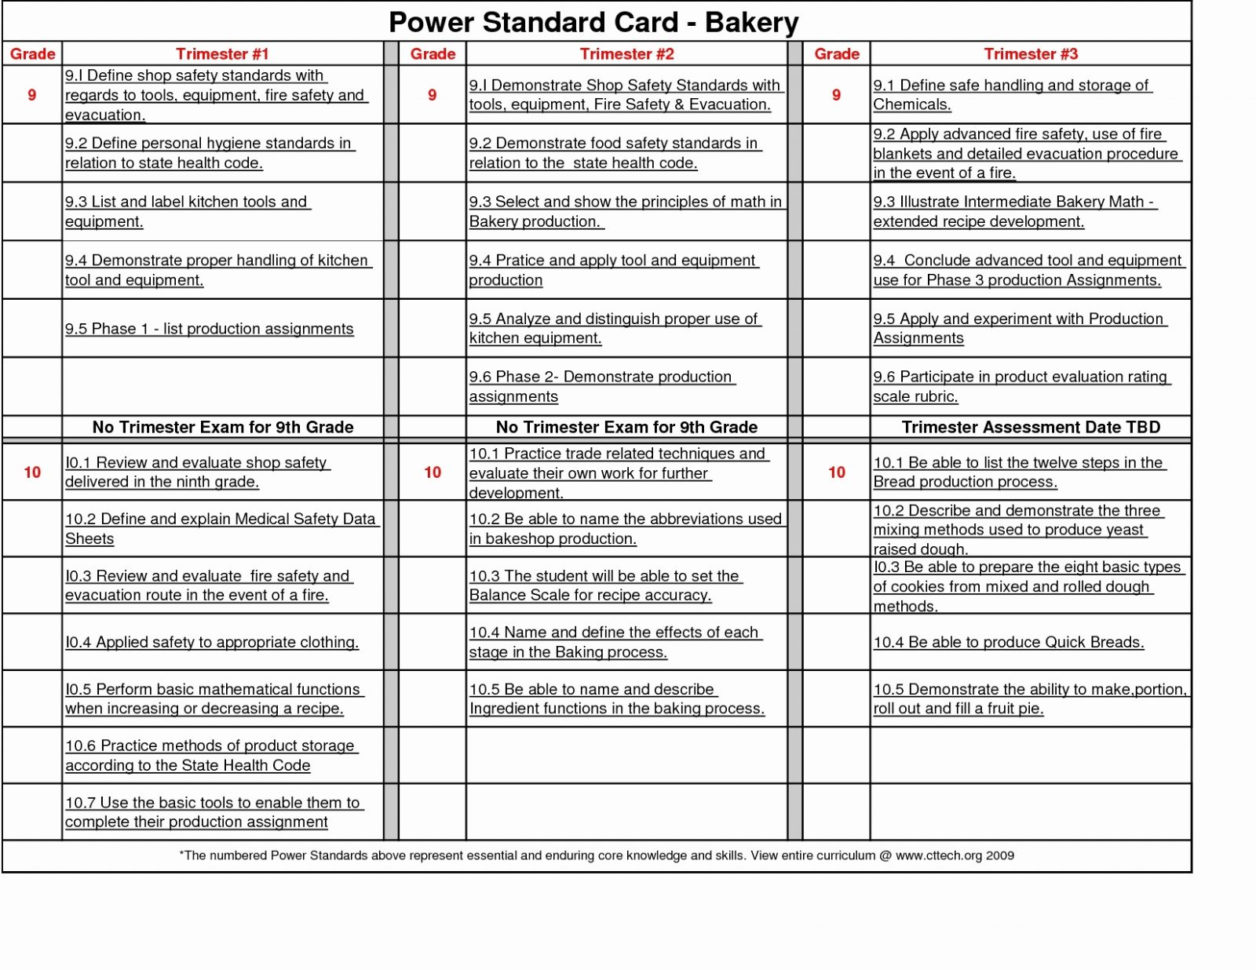 Food Product Cost & Pricing Spreadsheet With Regard To Food Product Cost Pricing Spreadsheet Download Xls Small  Askoverflow